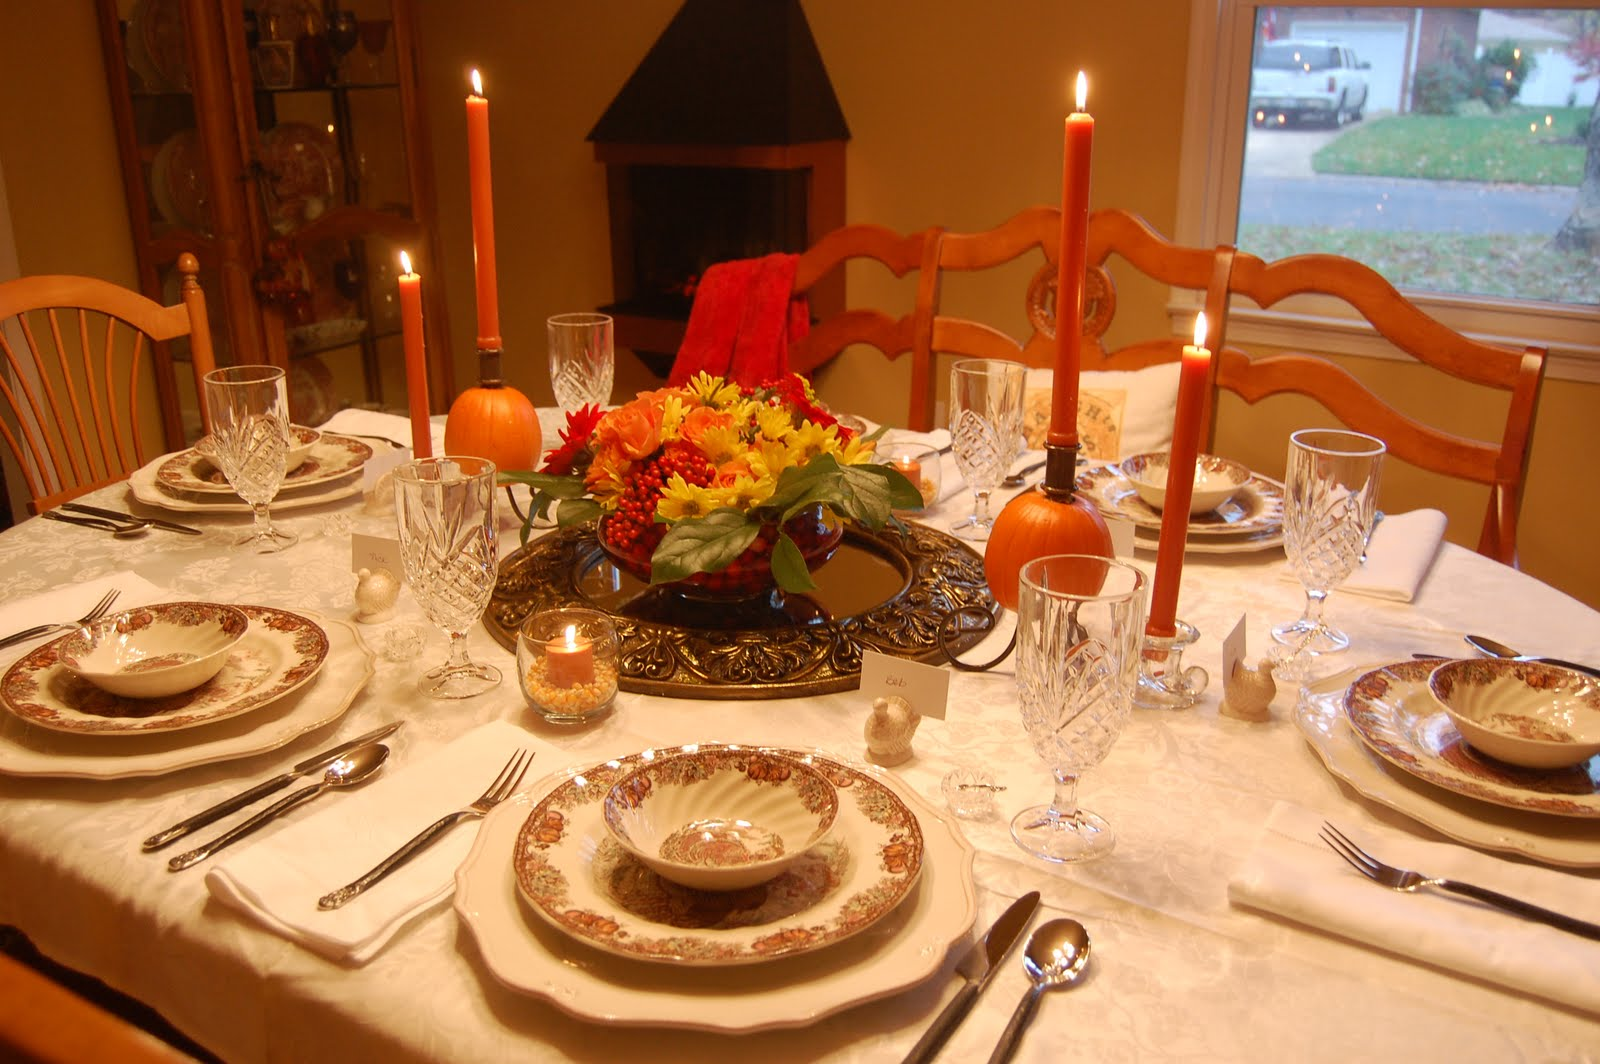 Ma maison thanksgiving table - Thanksgiving dinner table decorations ...